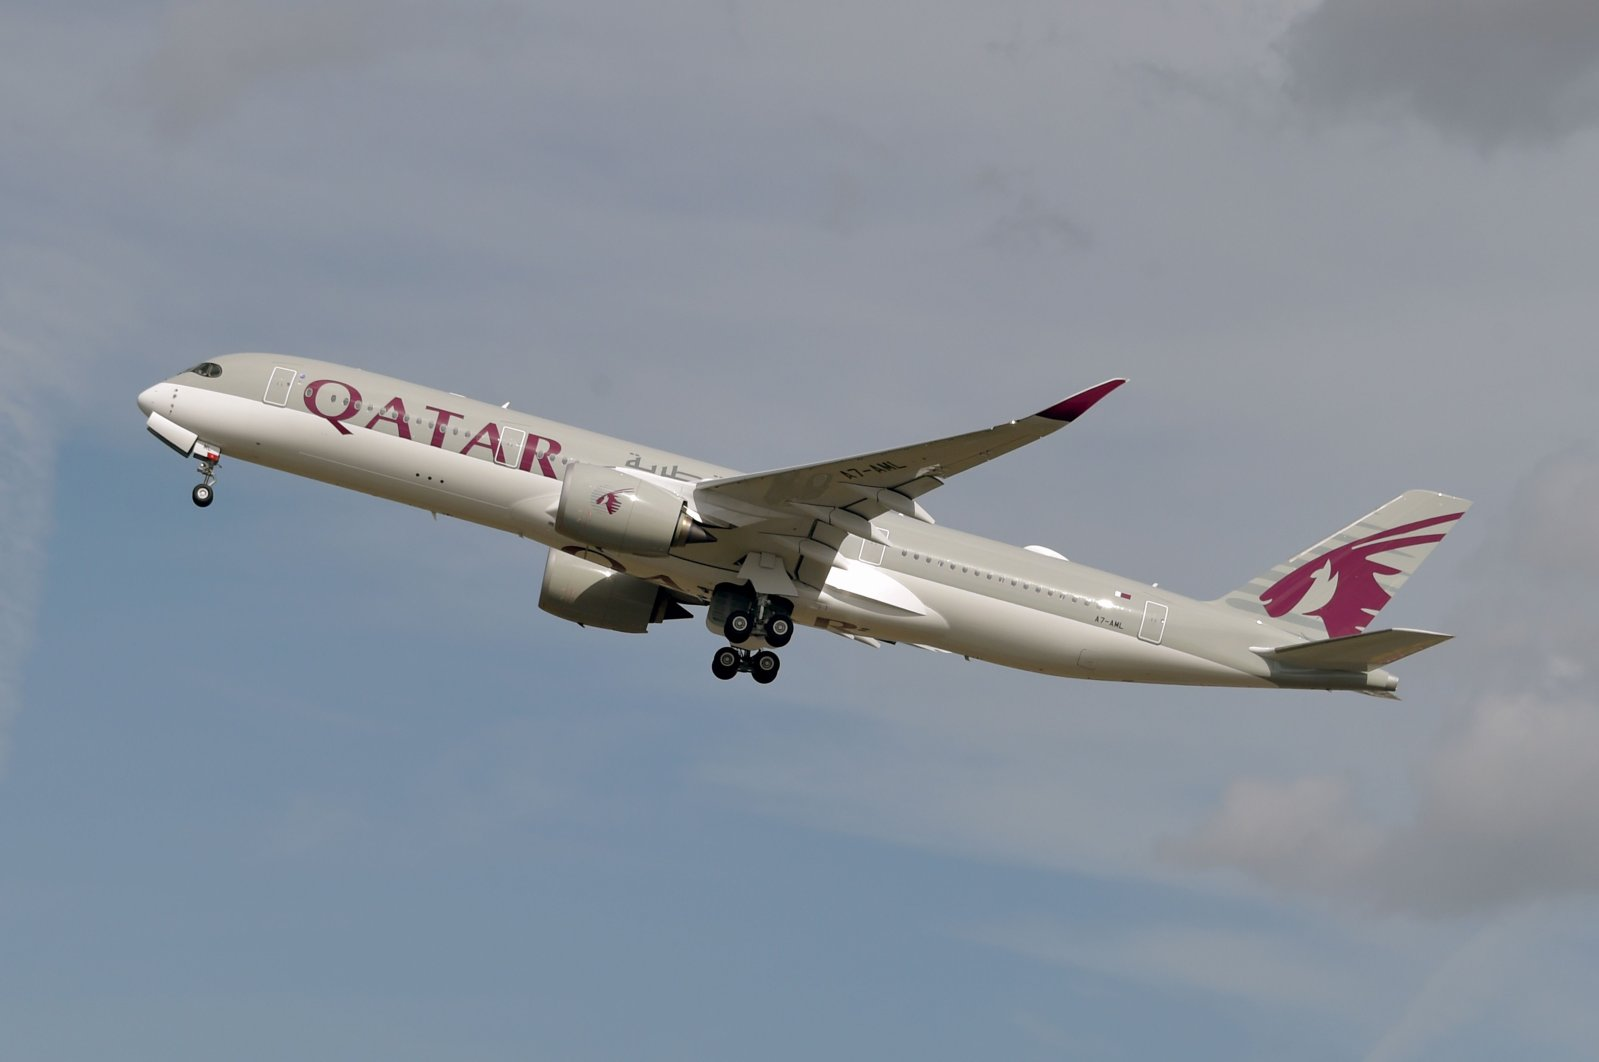 An Airbus A350 of Qatar Airways company after taking off from the Toulouse-Blagnac airport, near Toulouse, France, Sept. 27, 2019. (AFP Photo)